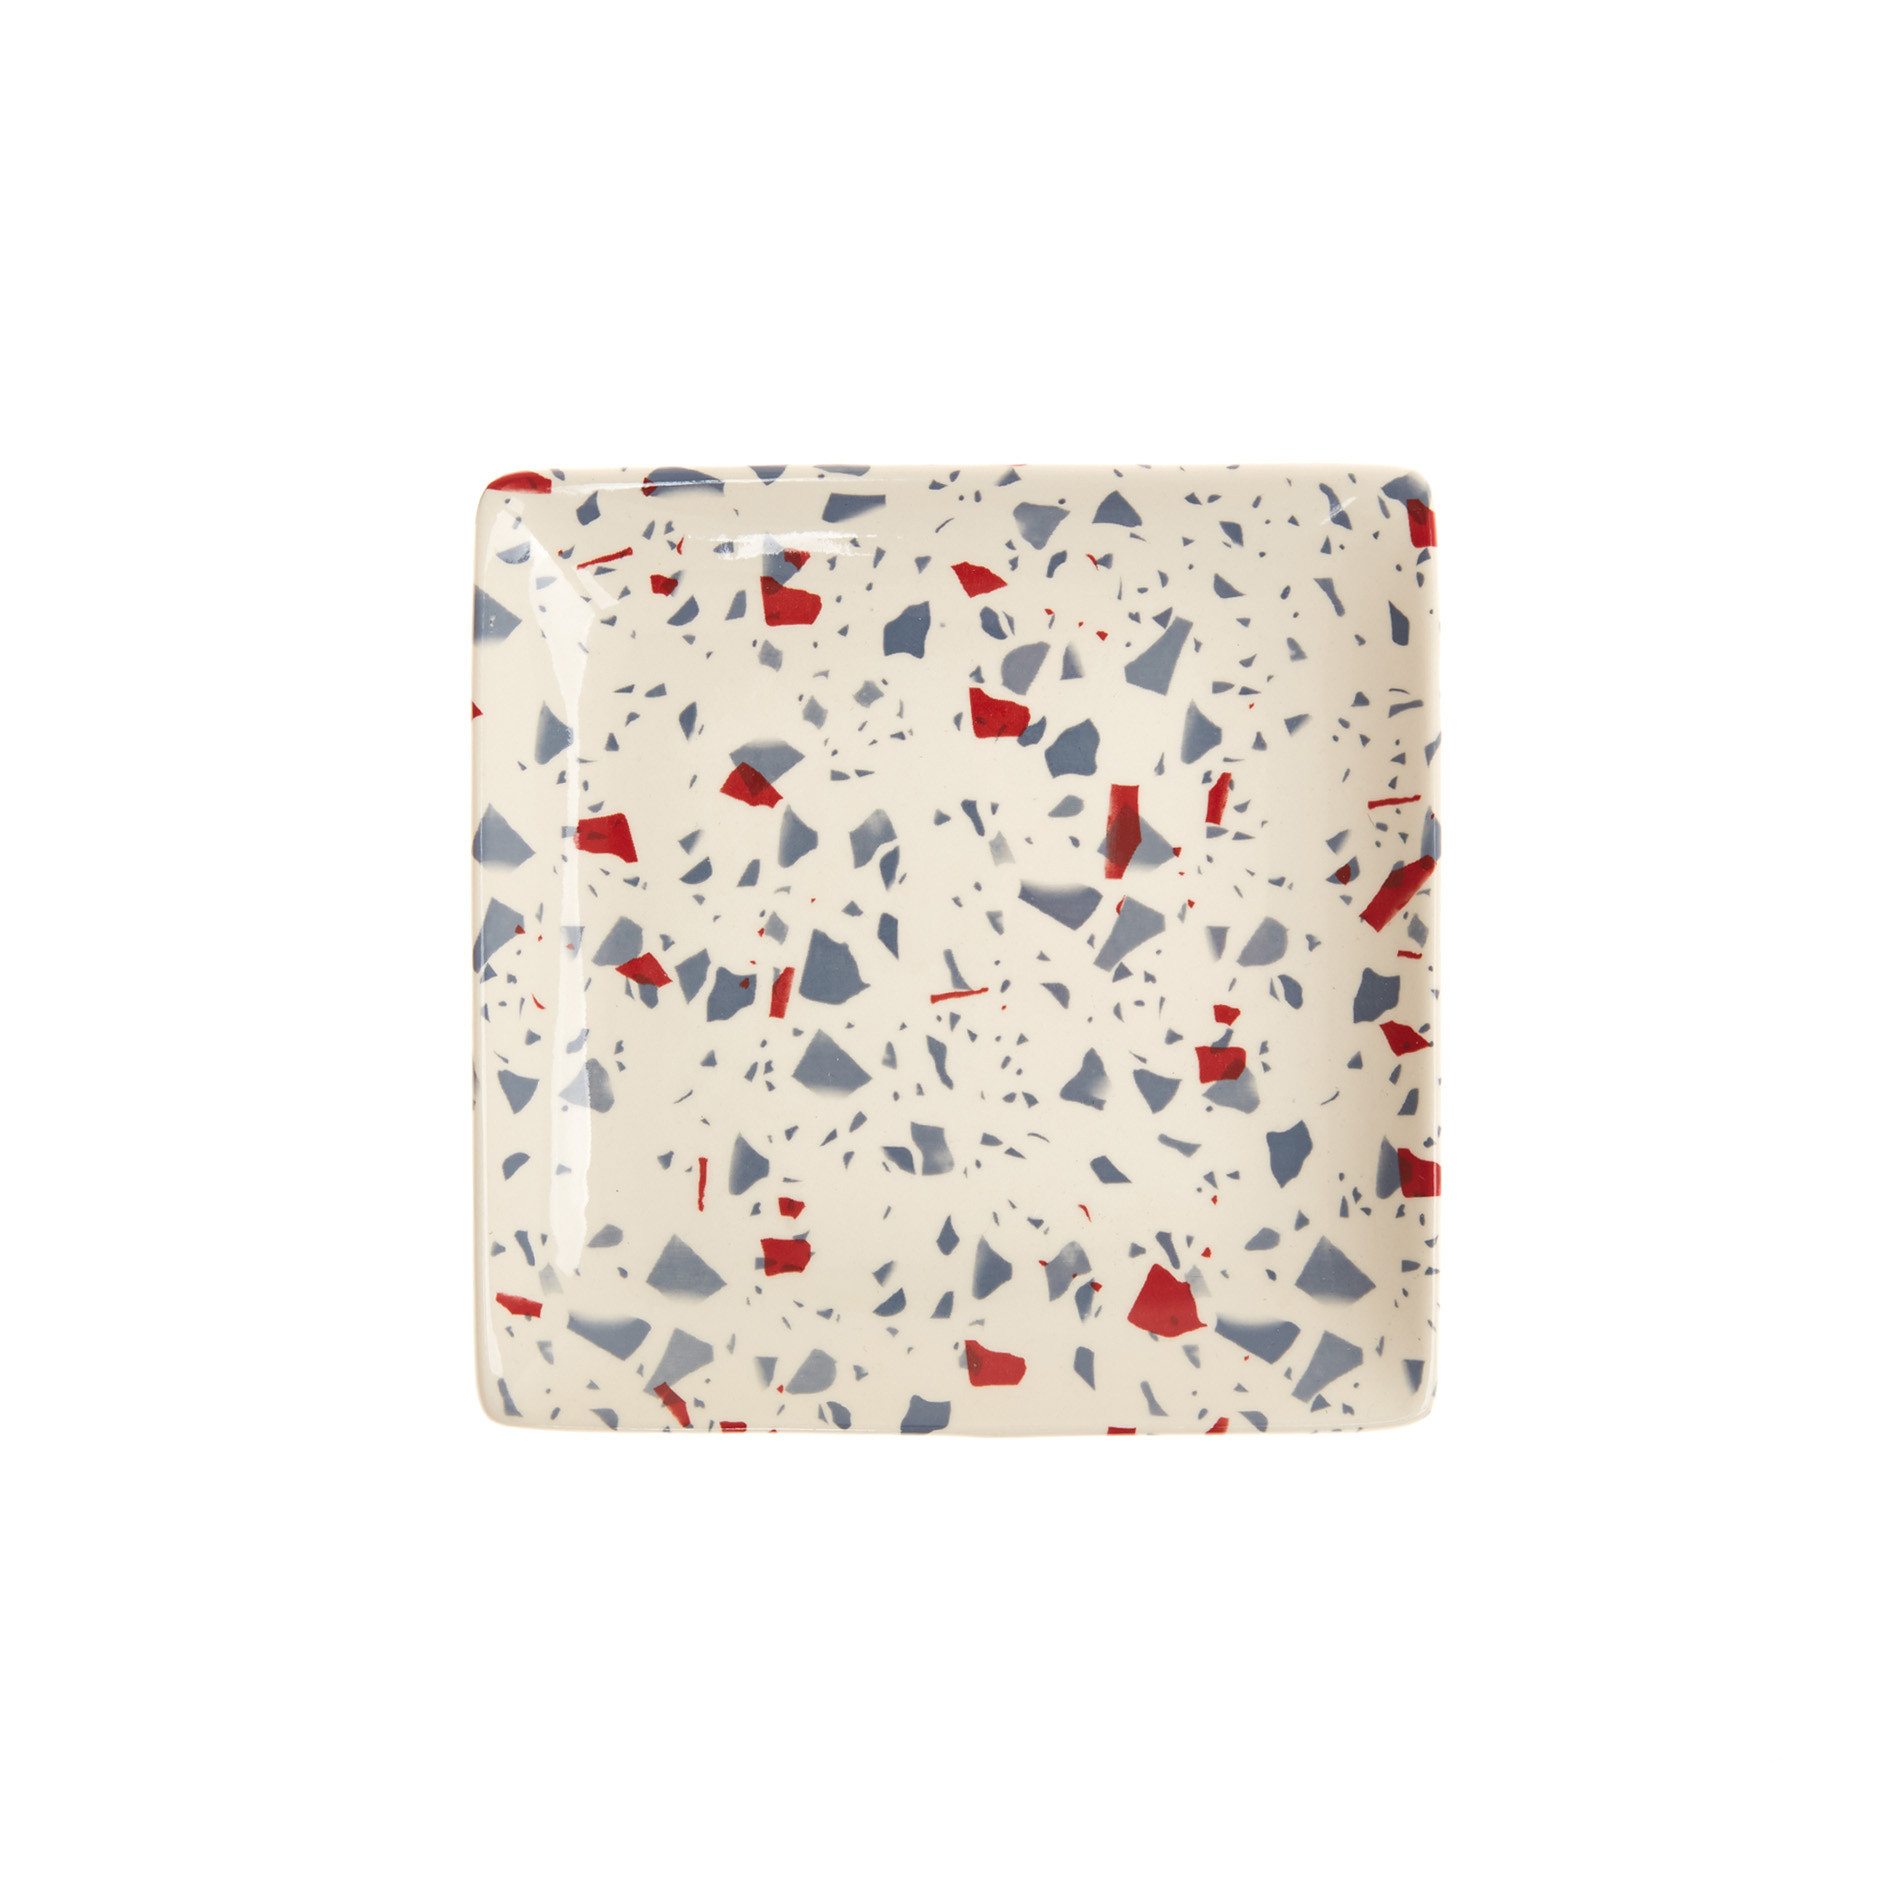 Marble-effect stoneware plate, White, large image number 0